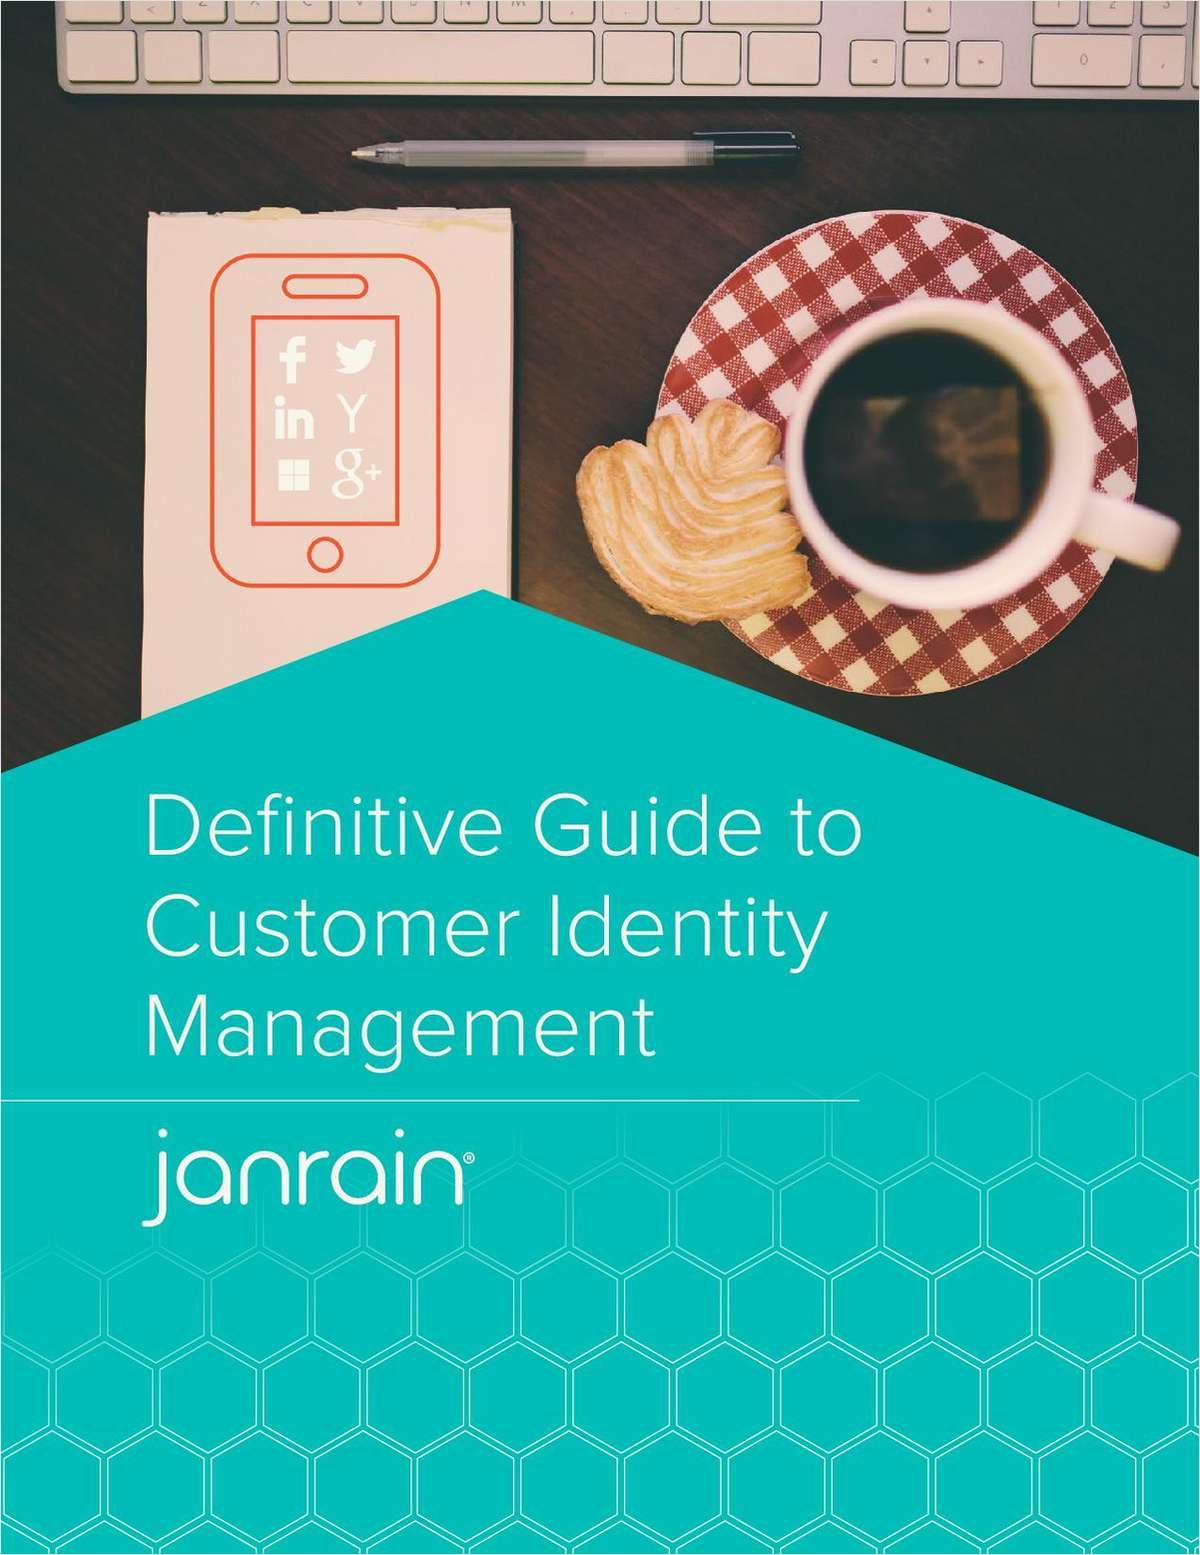 Definitive Guide to Customer Identity Management